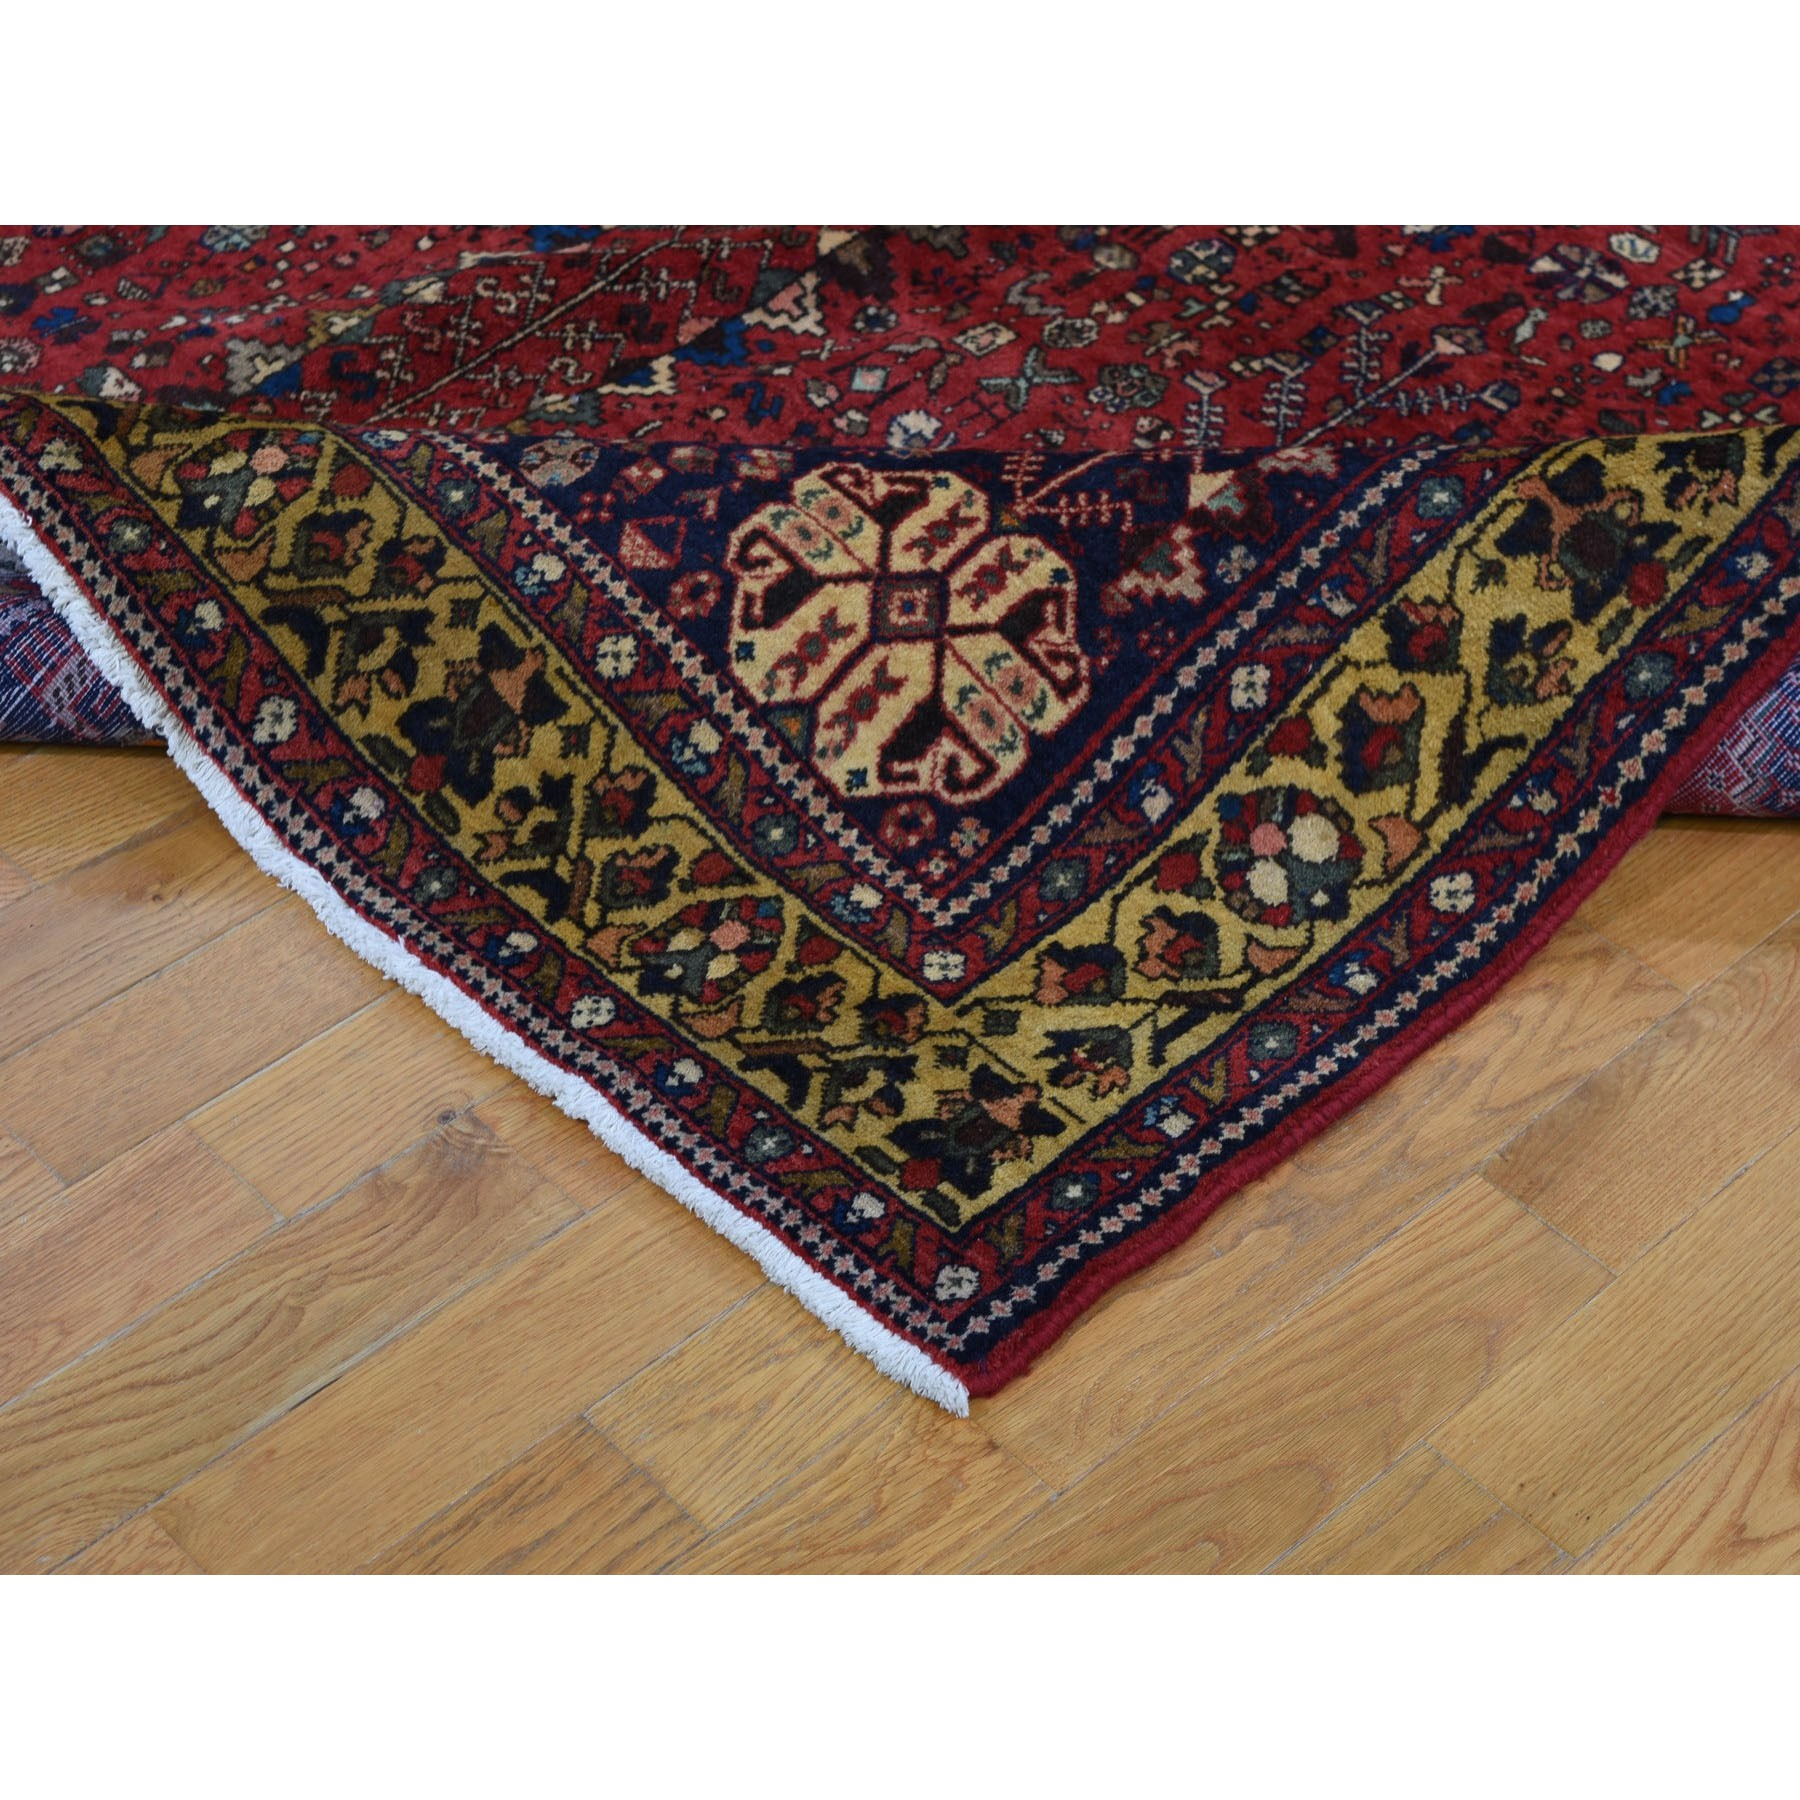 "6'7""x9'4"" Red Vintage Persian Shiraz Pure Wool Hand Knotted Exc Condition Oriental Rug"